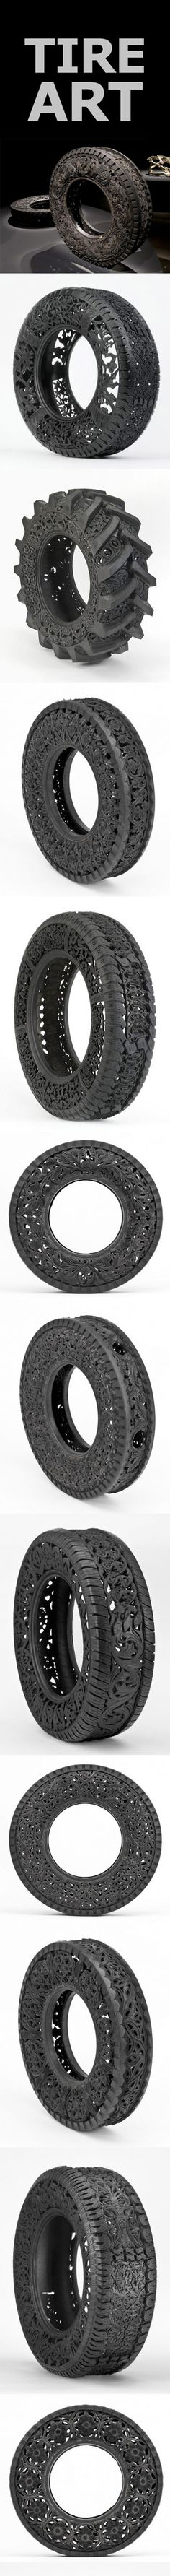 tire art.Jorge's tire art board is pretty thorough//They see me rollin'... they hatin'...   try catch me ridin' pretty......Corinne